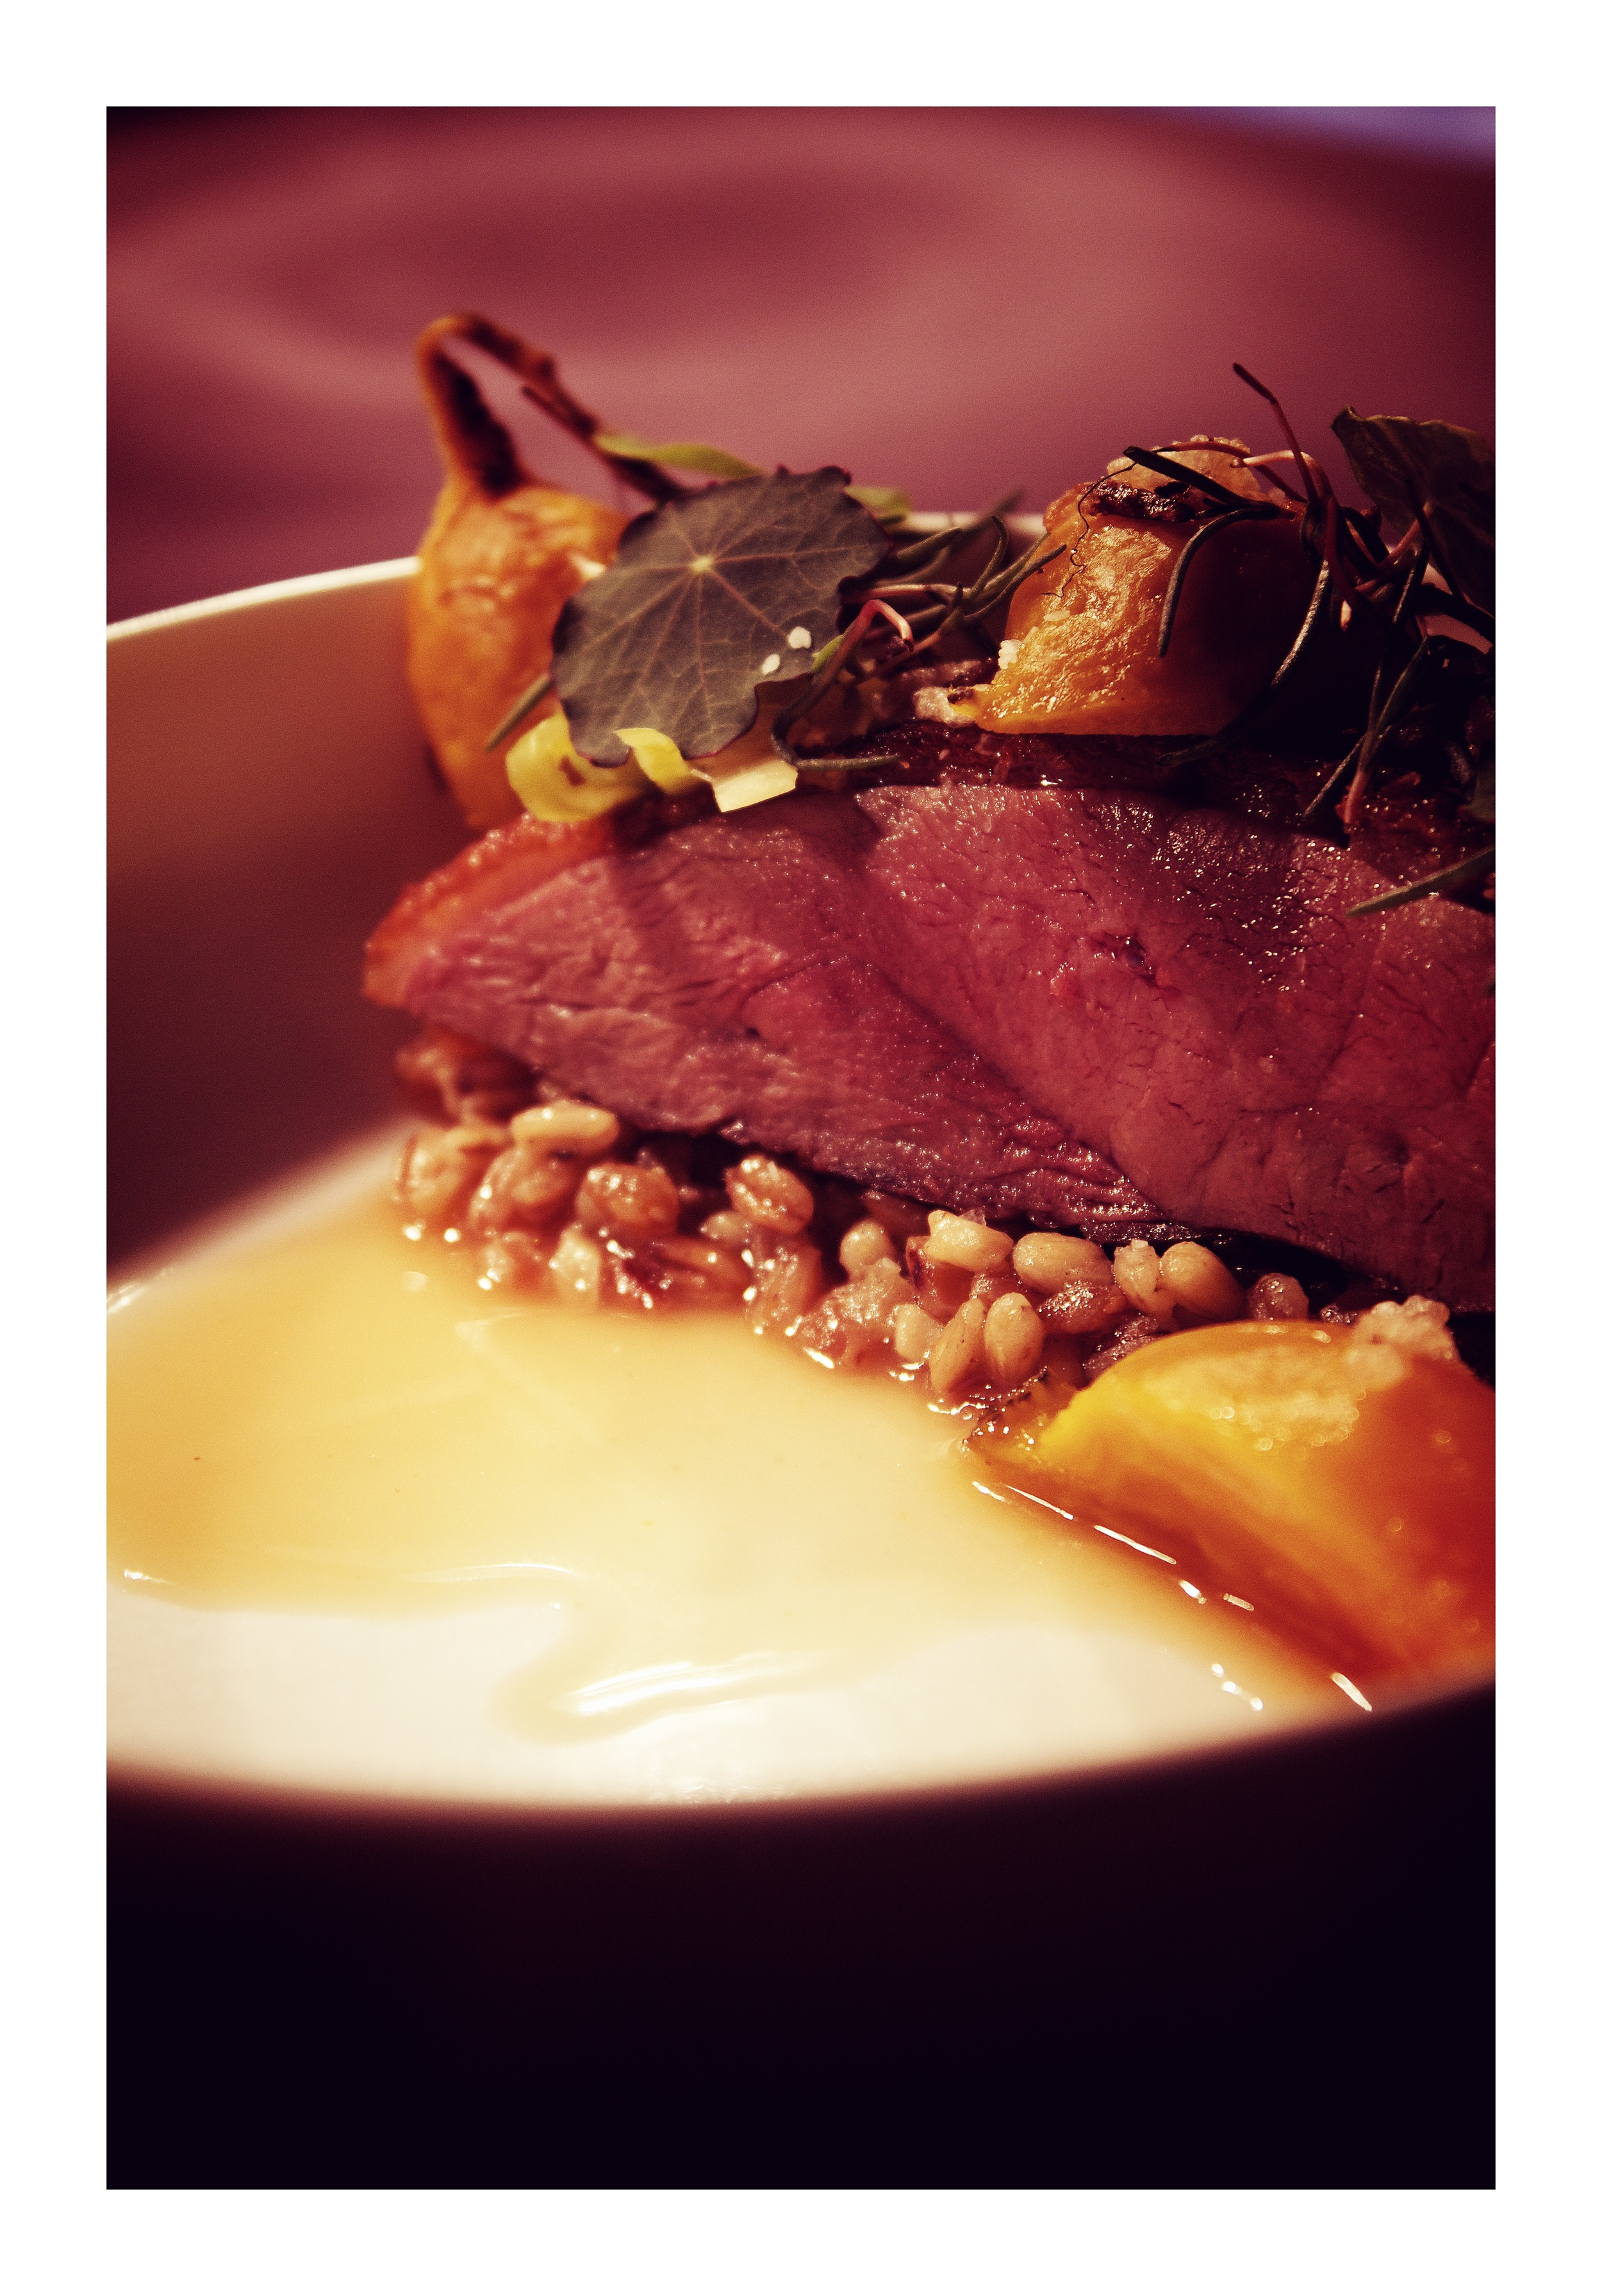 35 day dry aged duck | braised grains | salt preserved beets glazed in apricot | sea beans | sweet and sour meat broth